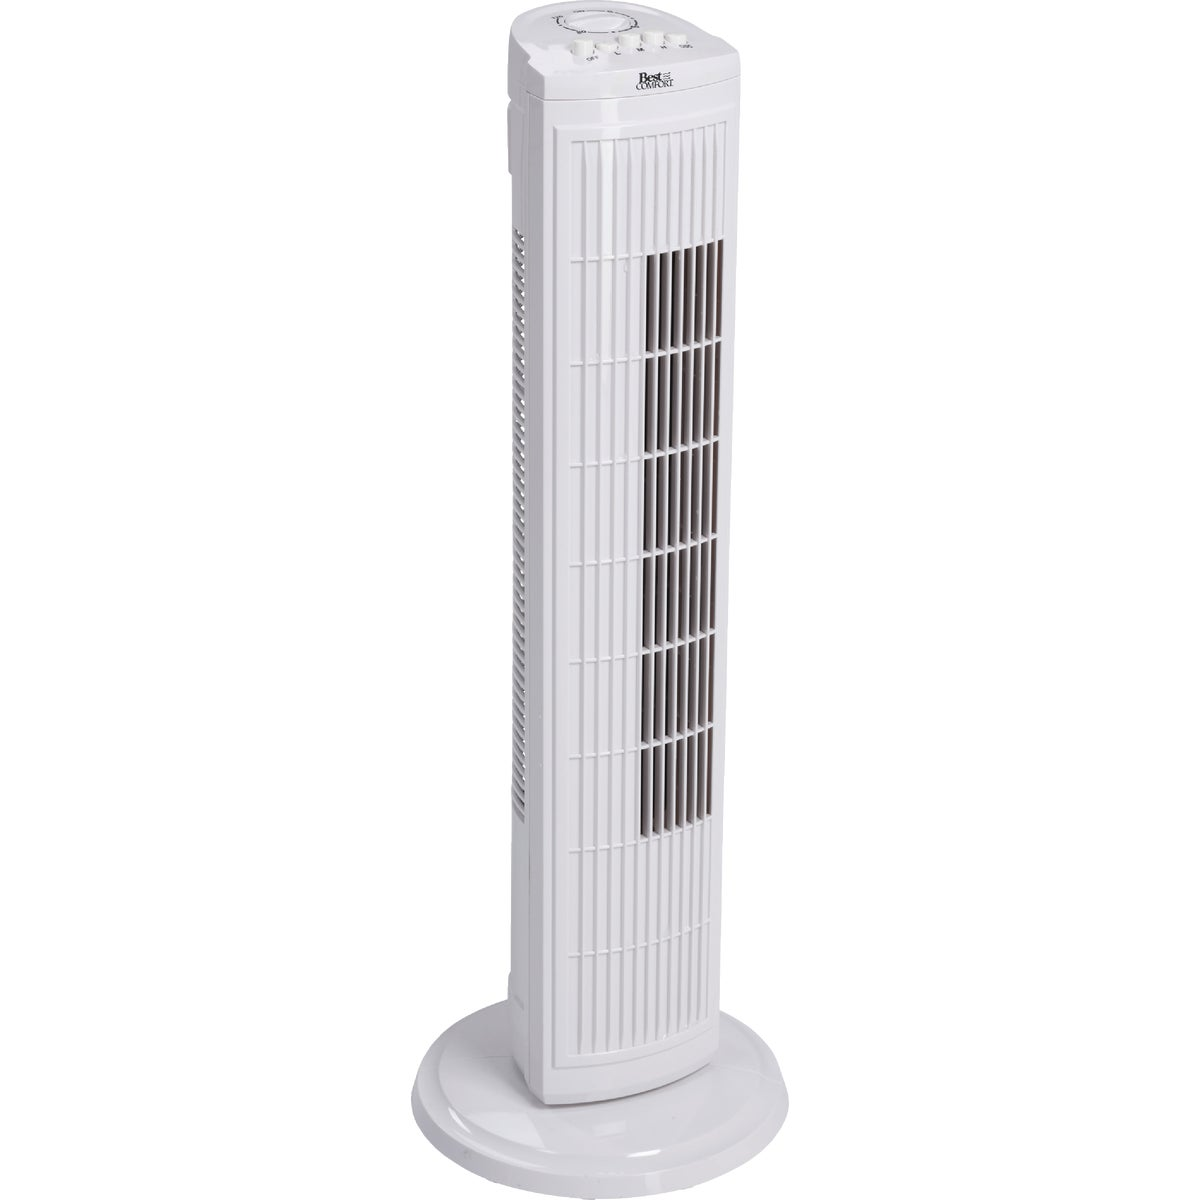 Best Comfort 30 In. Tower Fan, FZ10-9HA